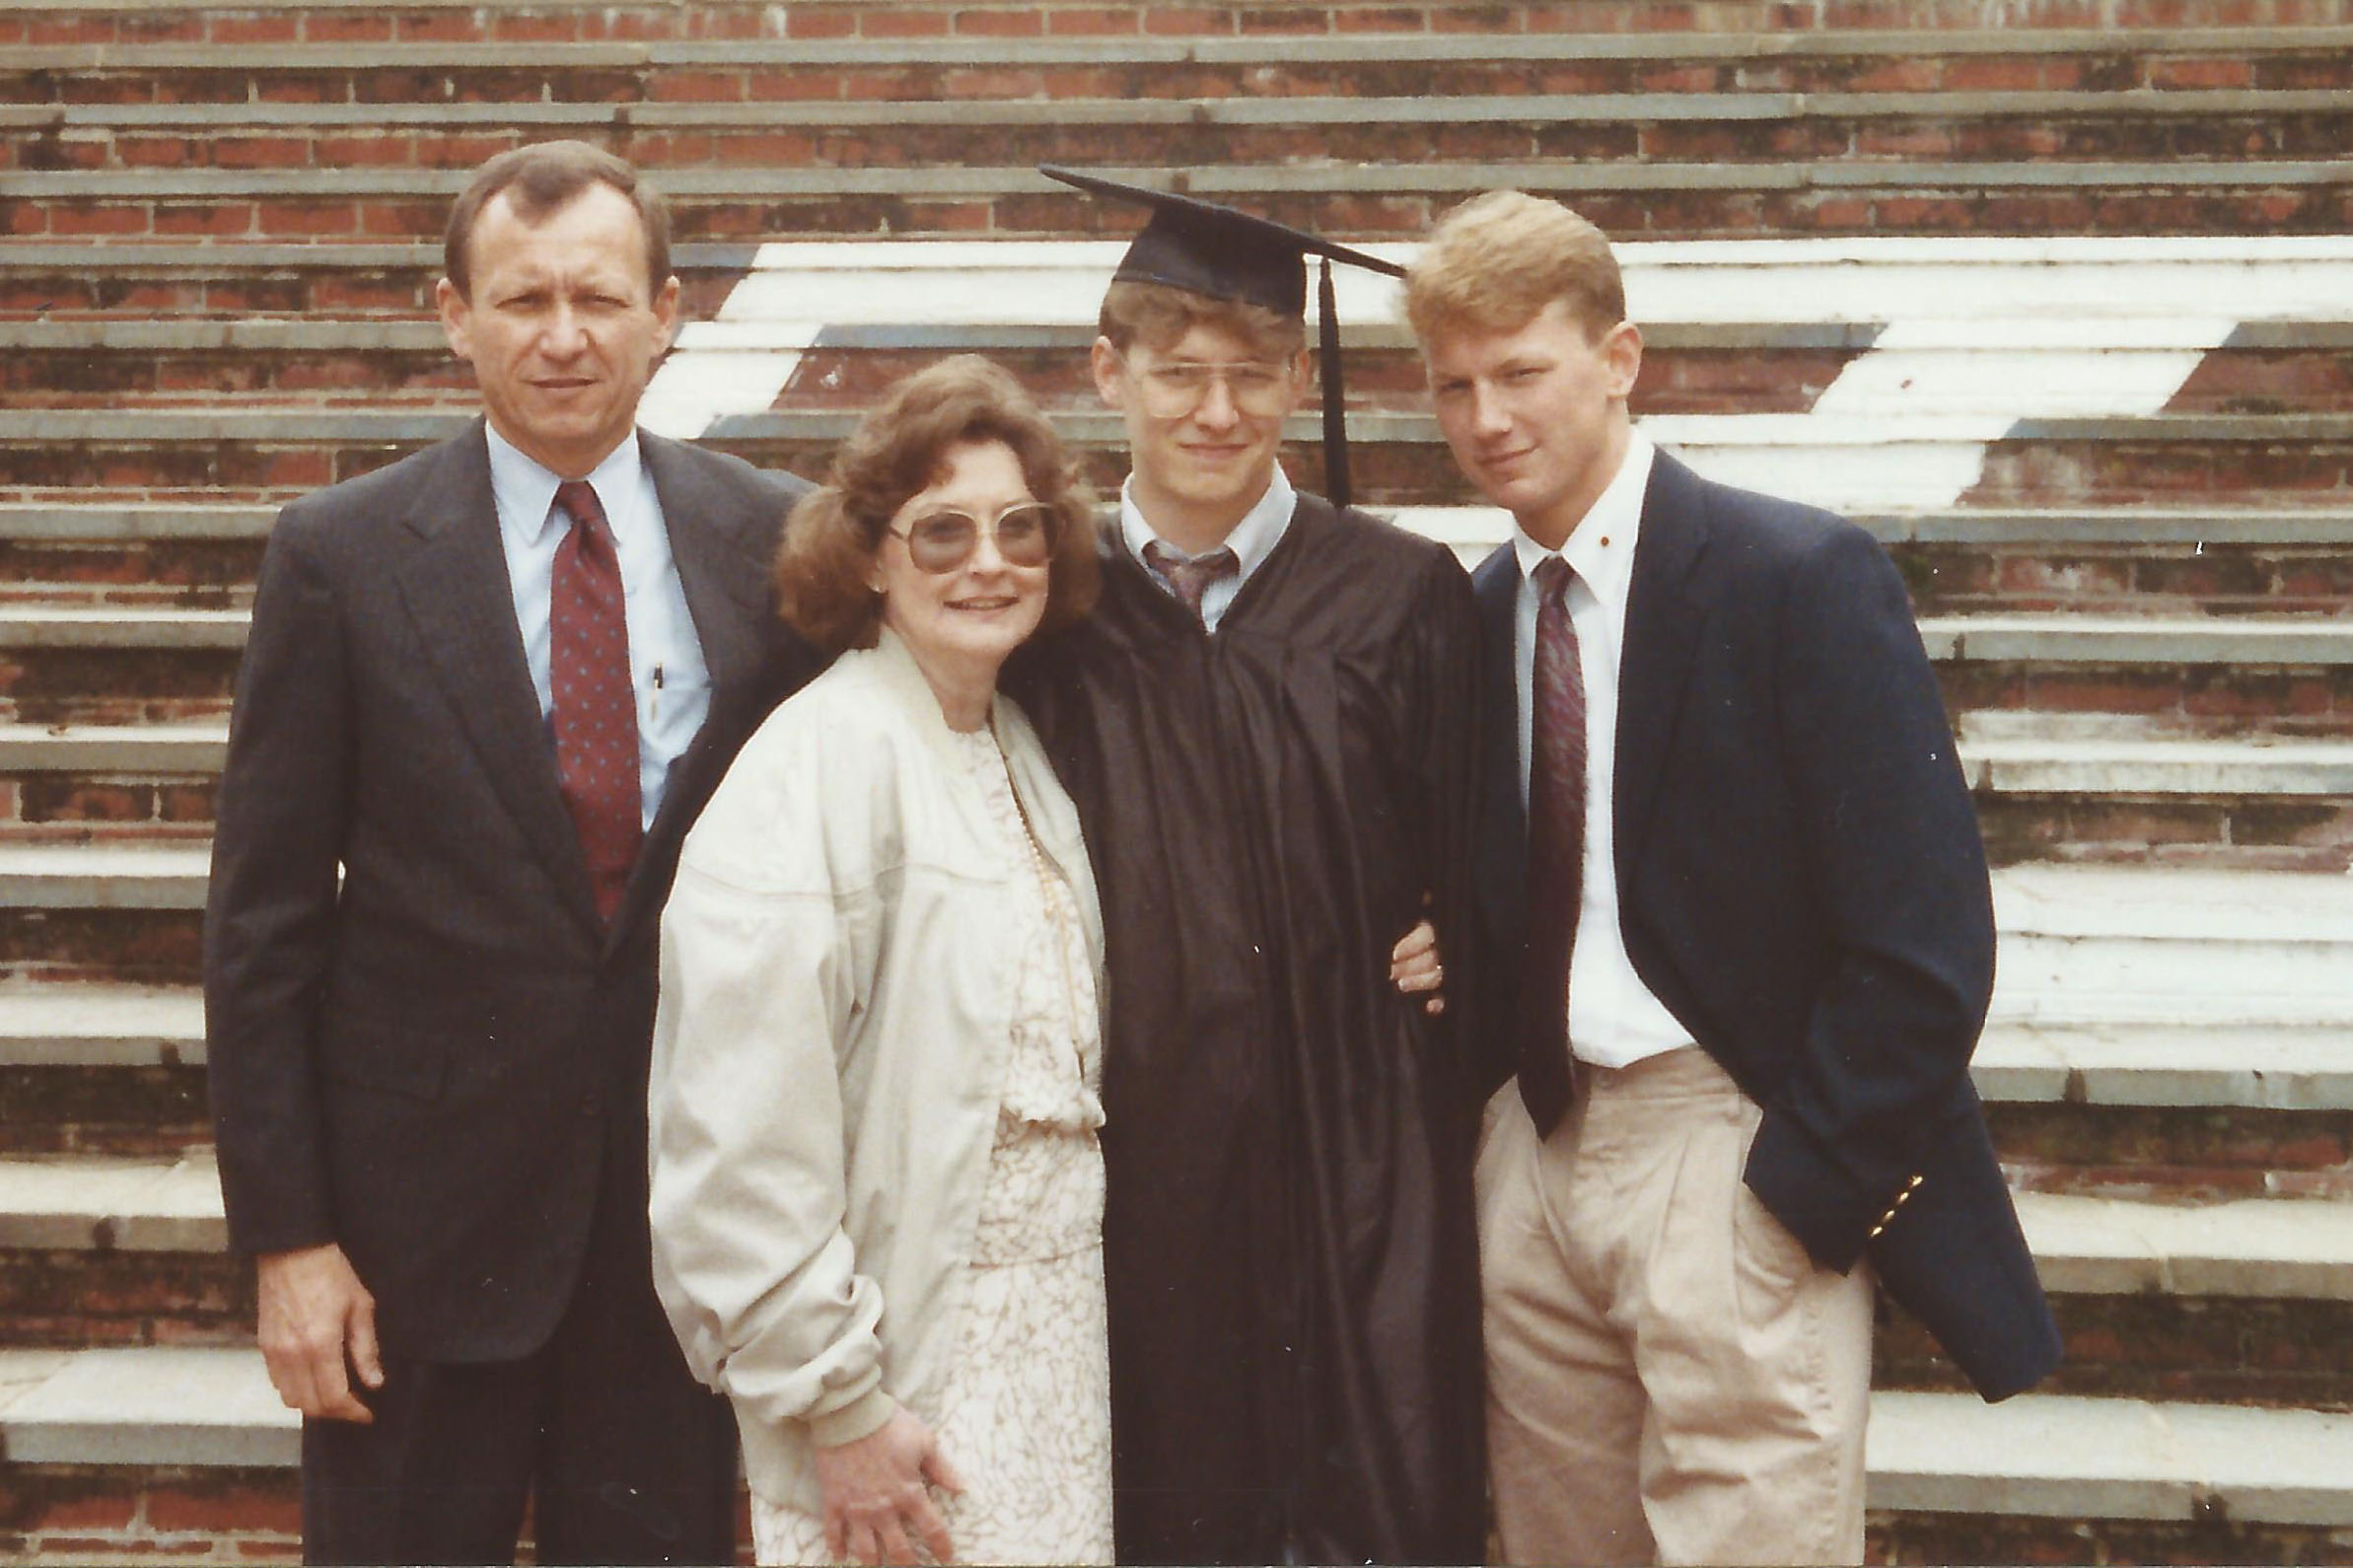 In 1991, Seth Folsom completed his first year and his brother Ben graduated. (Image courtesy Seth Folsom.)